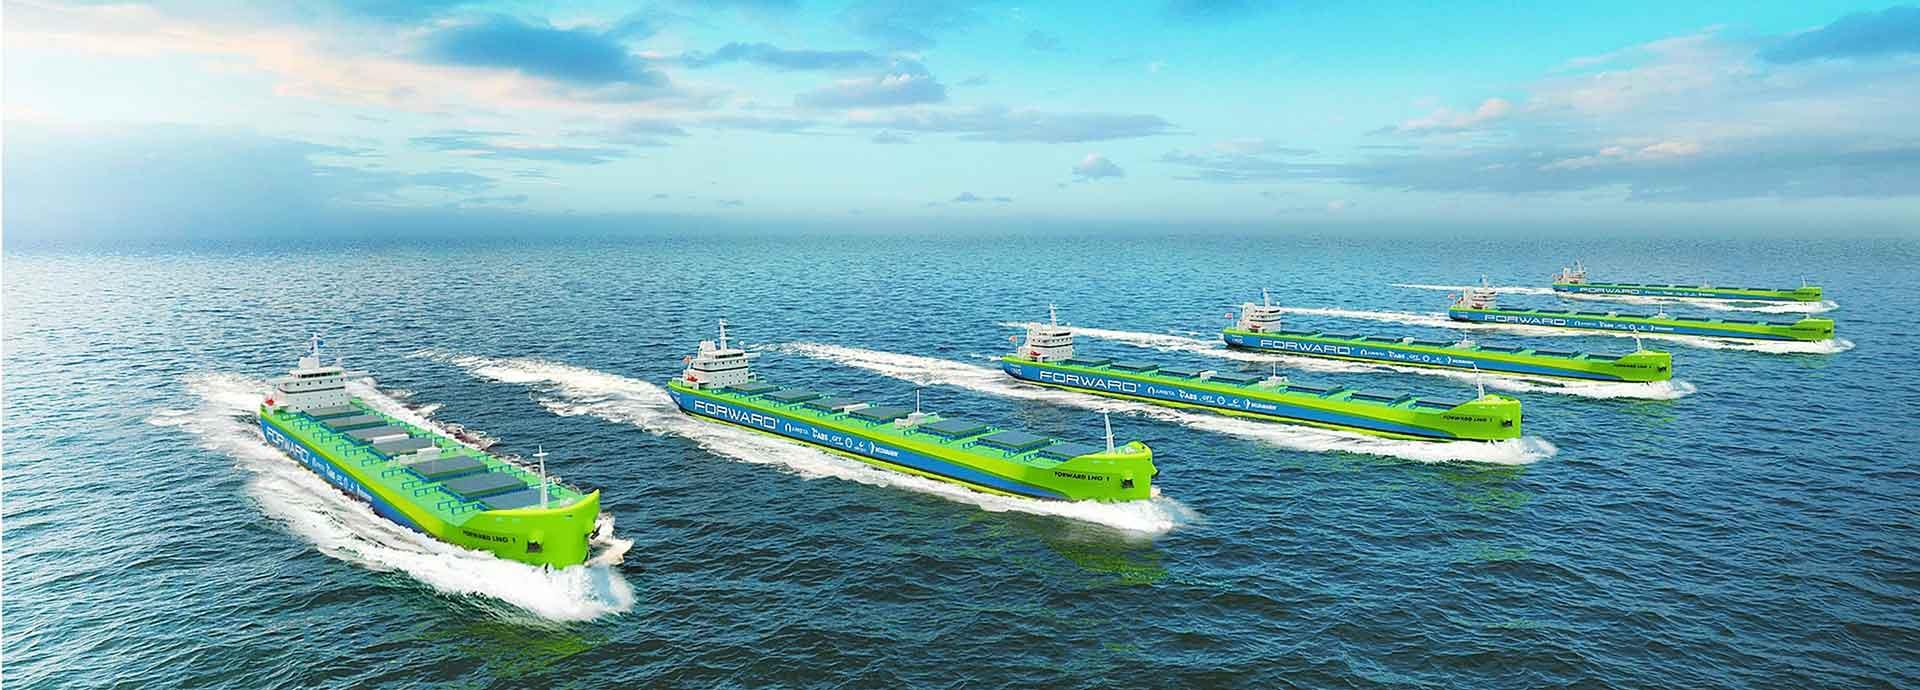 Shipping in 2020 Choosing the right fuel and propulsion system